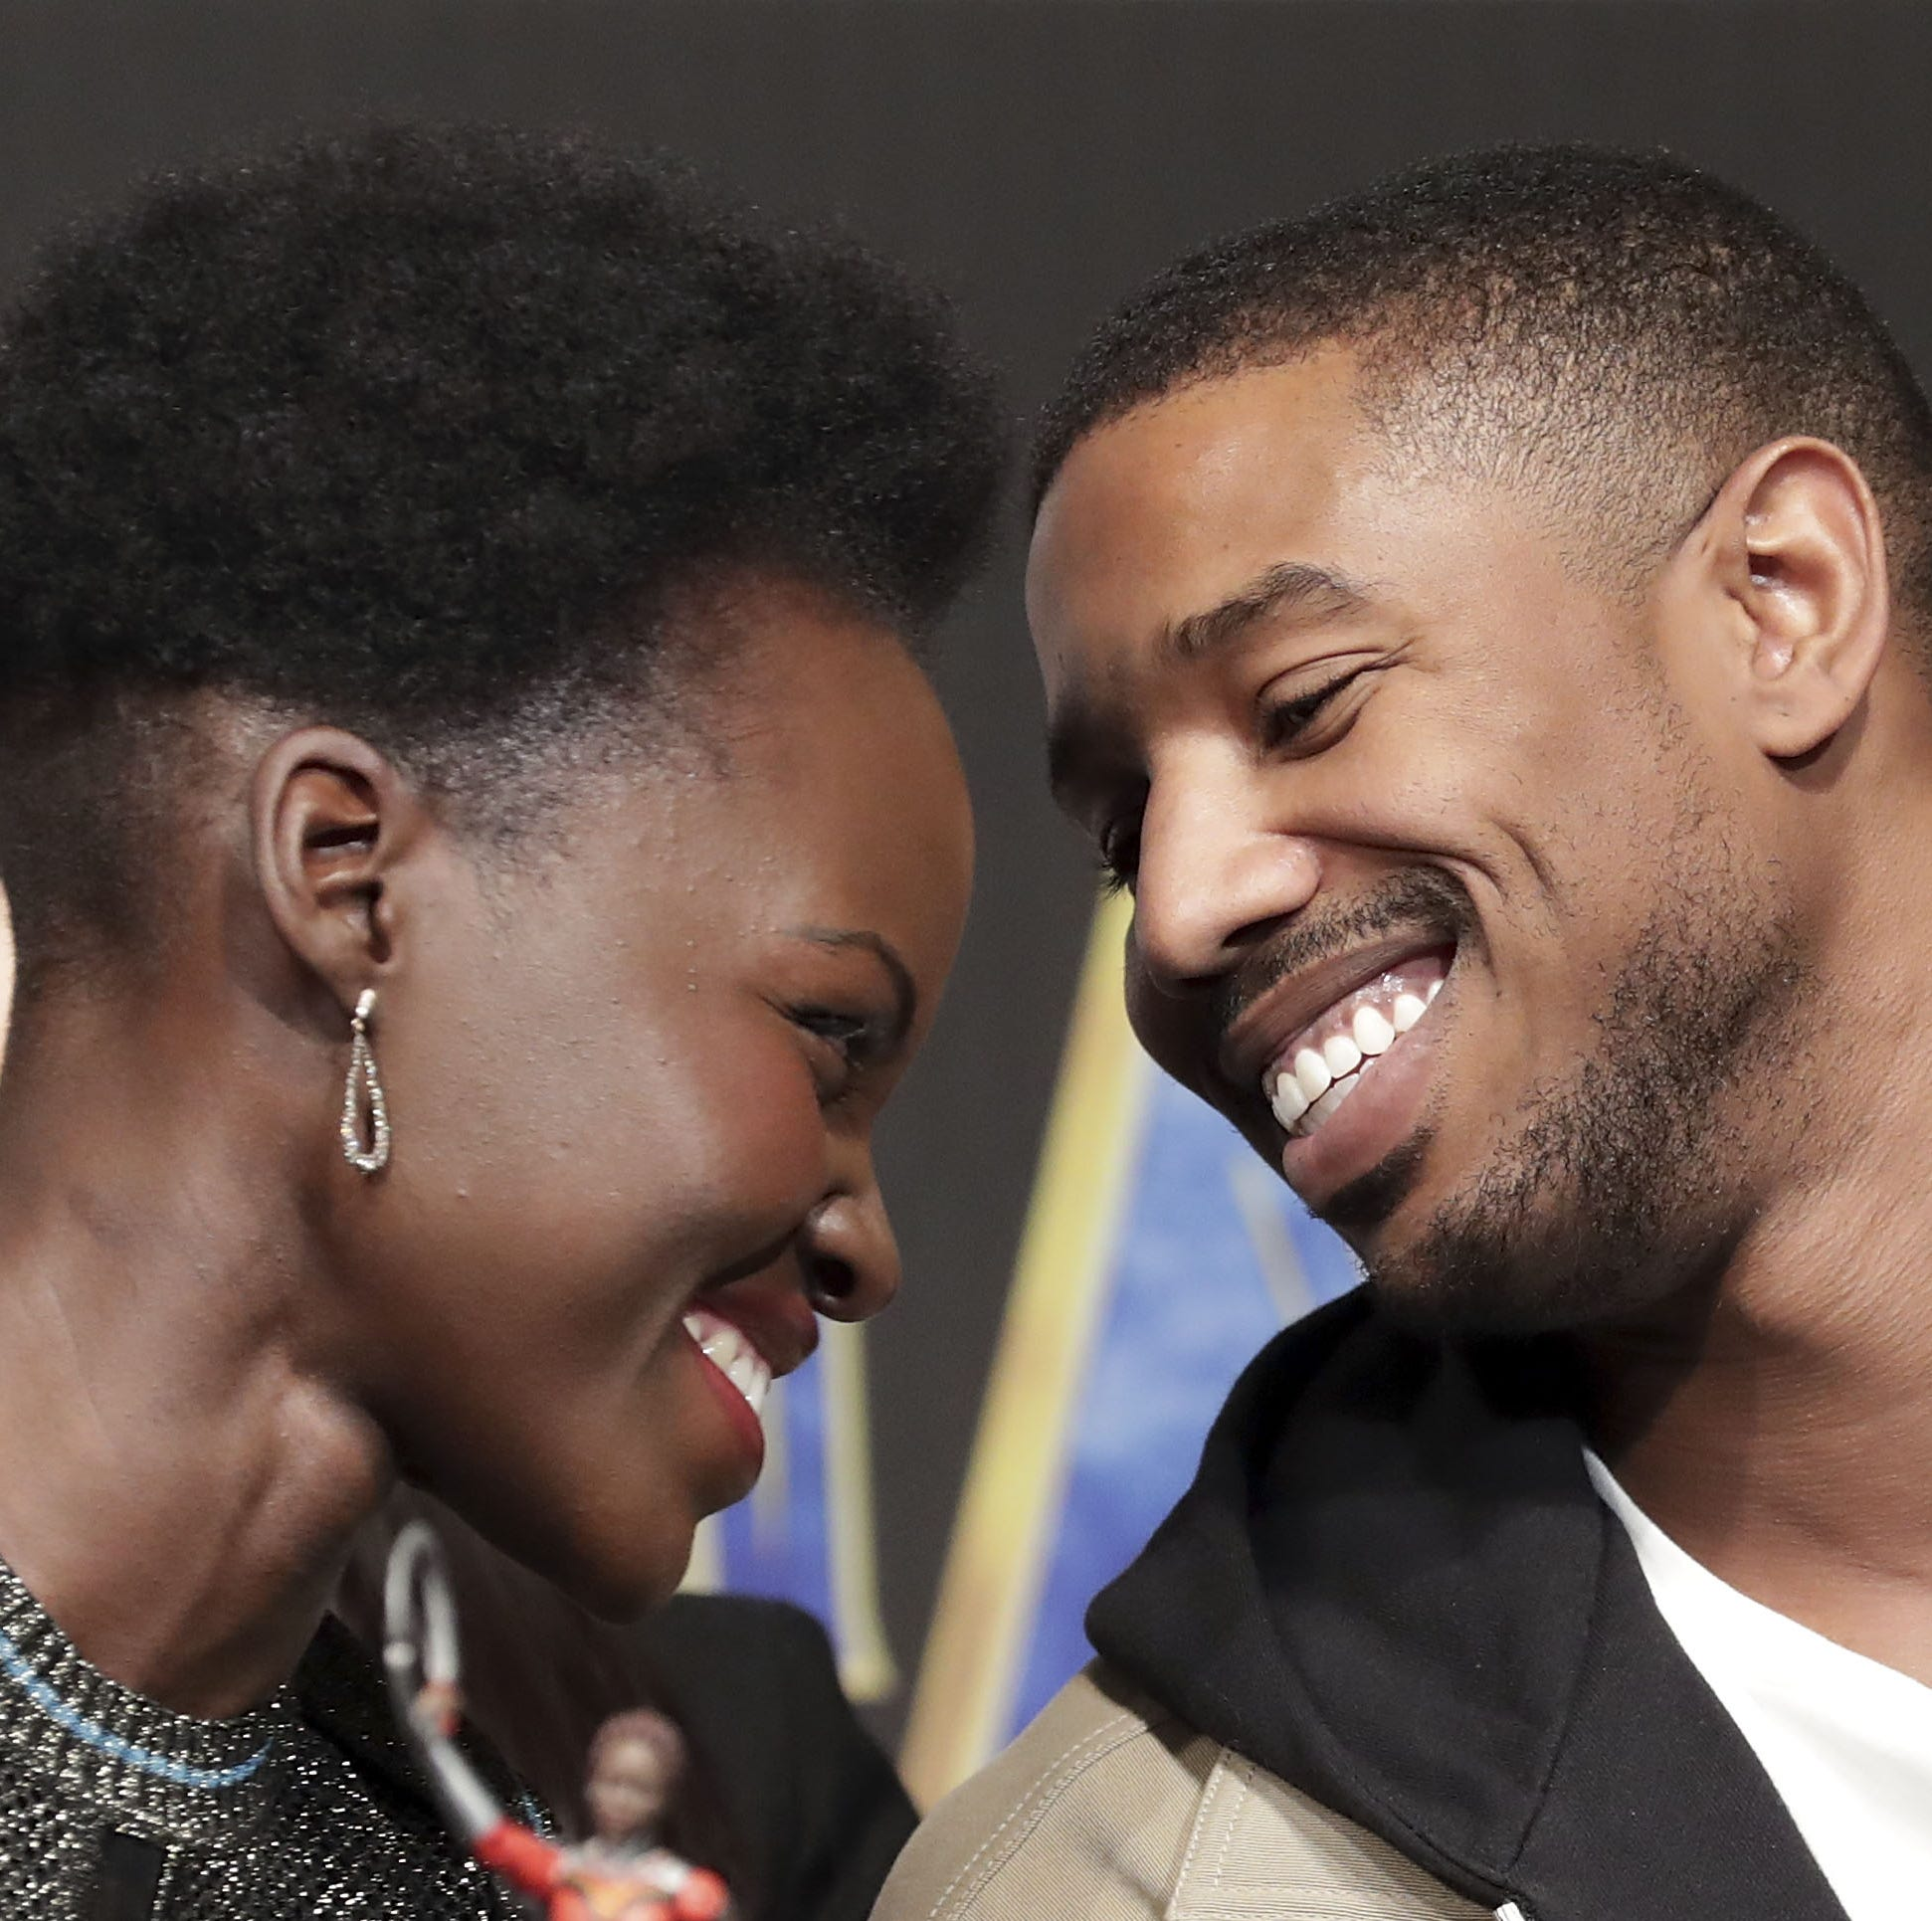 SEOUL, SOUTH KOREA - FEBRUARY 05:  Actor Lupita Nyong'o(L) and Michael B. Jordan attend the press conference for the Seoul premiere of 'Black Panther' on February 5, 2018 in Seoul, South Korea.  (Photo by Han Myung-Gu/Getty Images for Disney) ORG XMIT: 775111798 ORIG FILE ID: 914344104